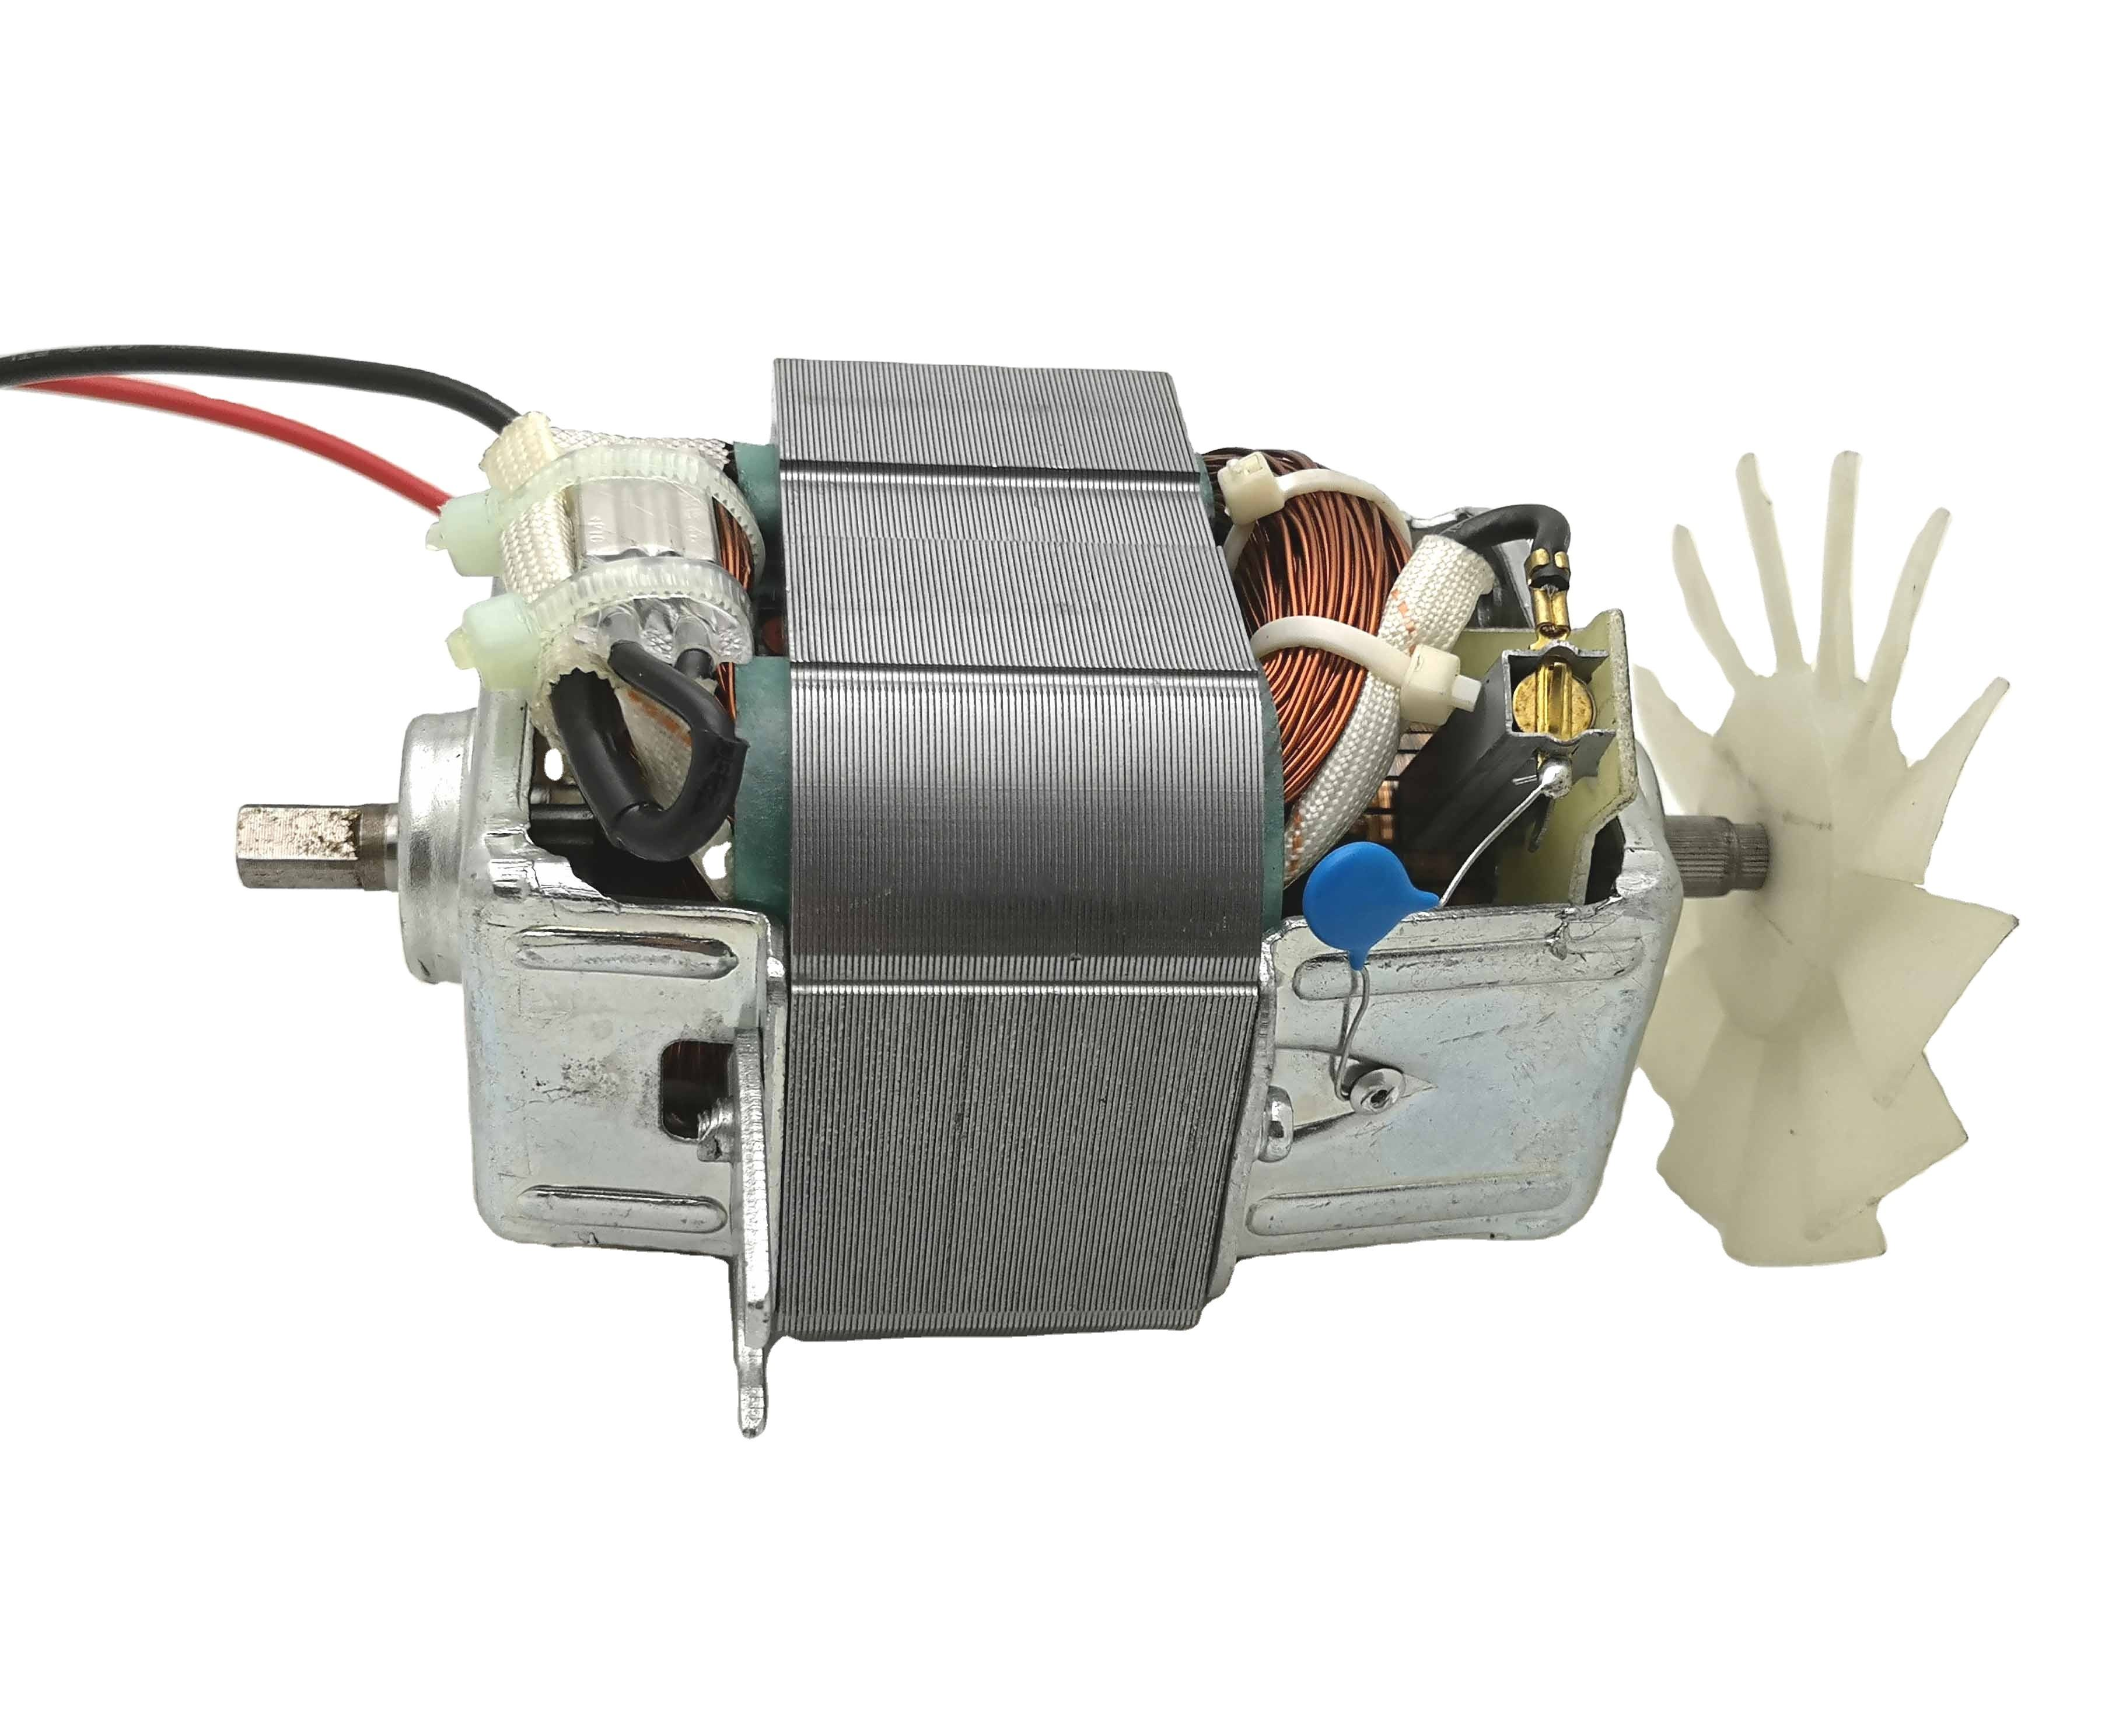 700W AC Motor 8835 for kItchen Robot food processor